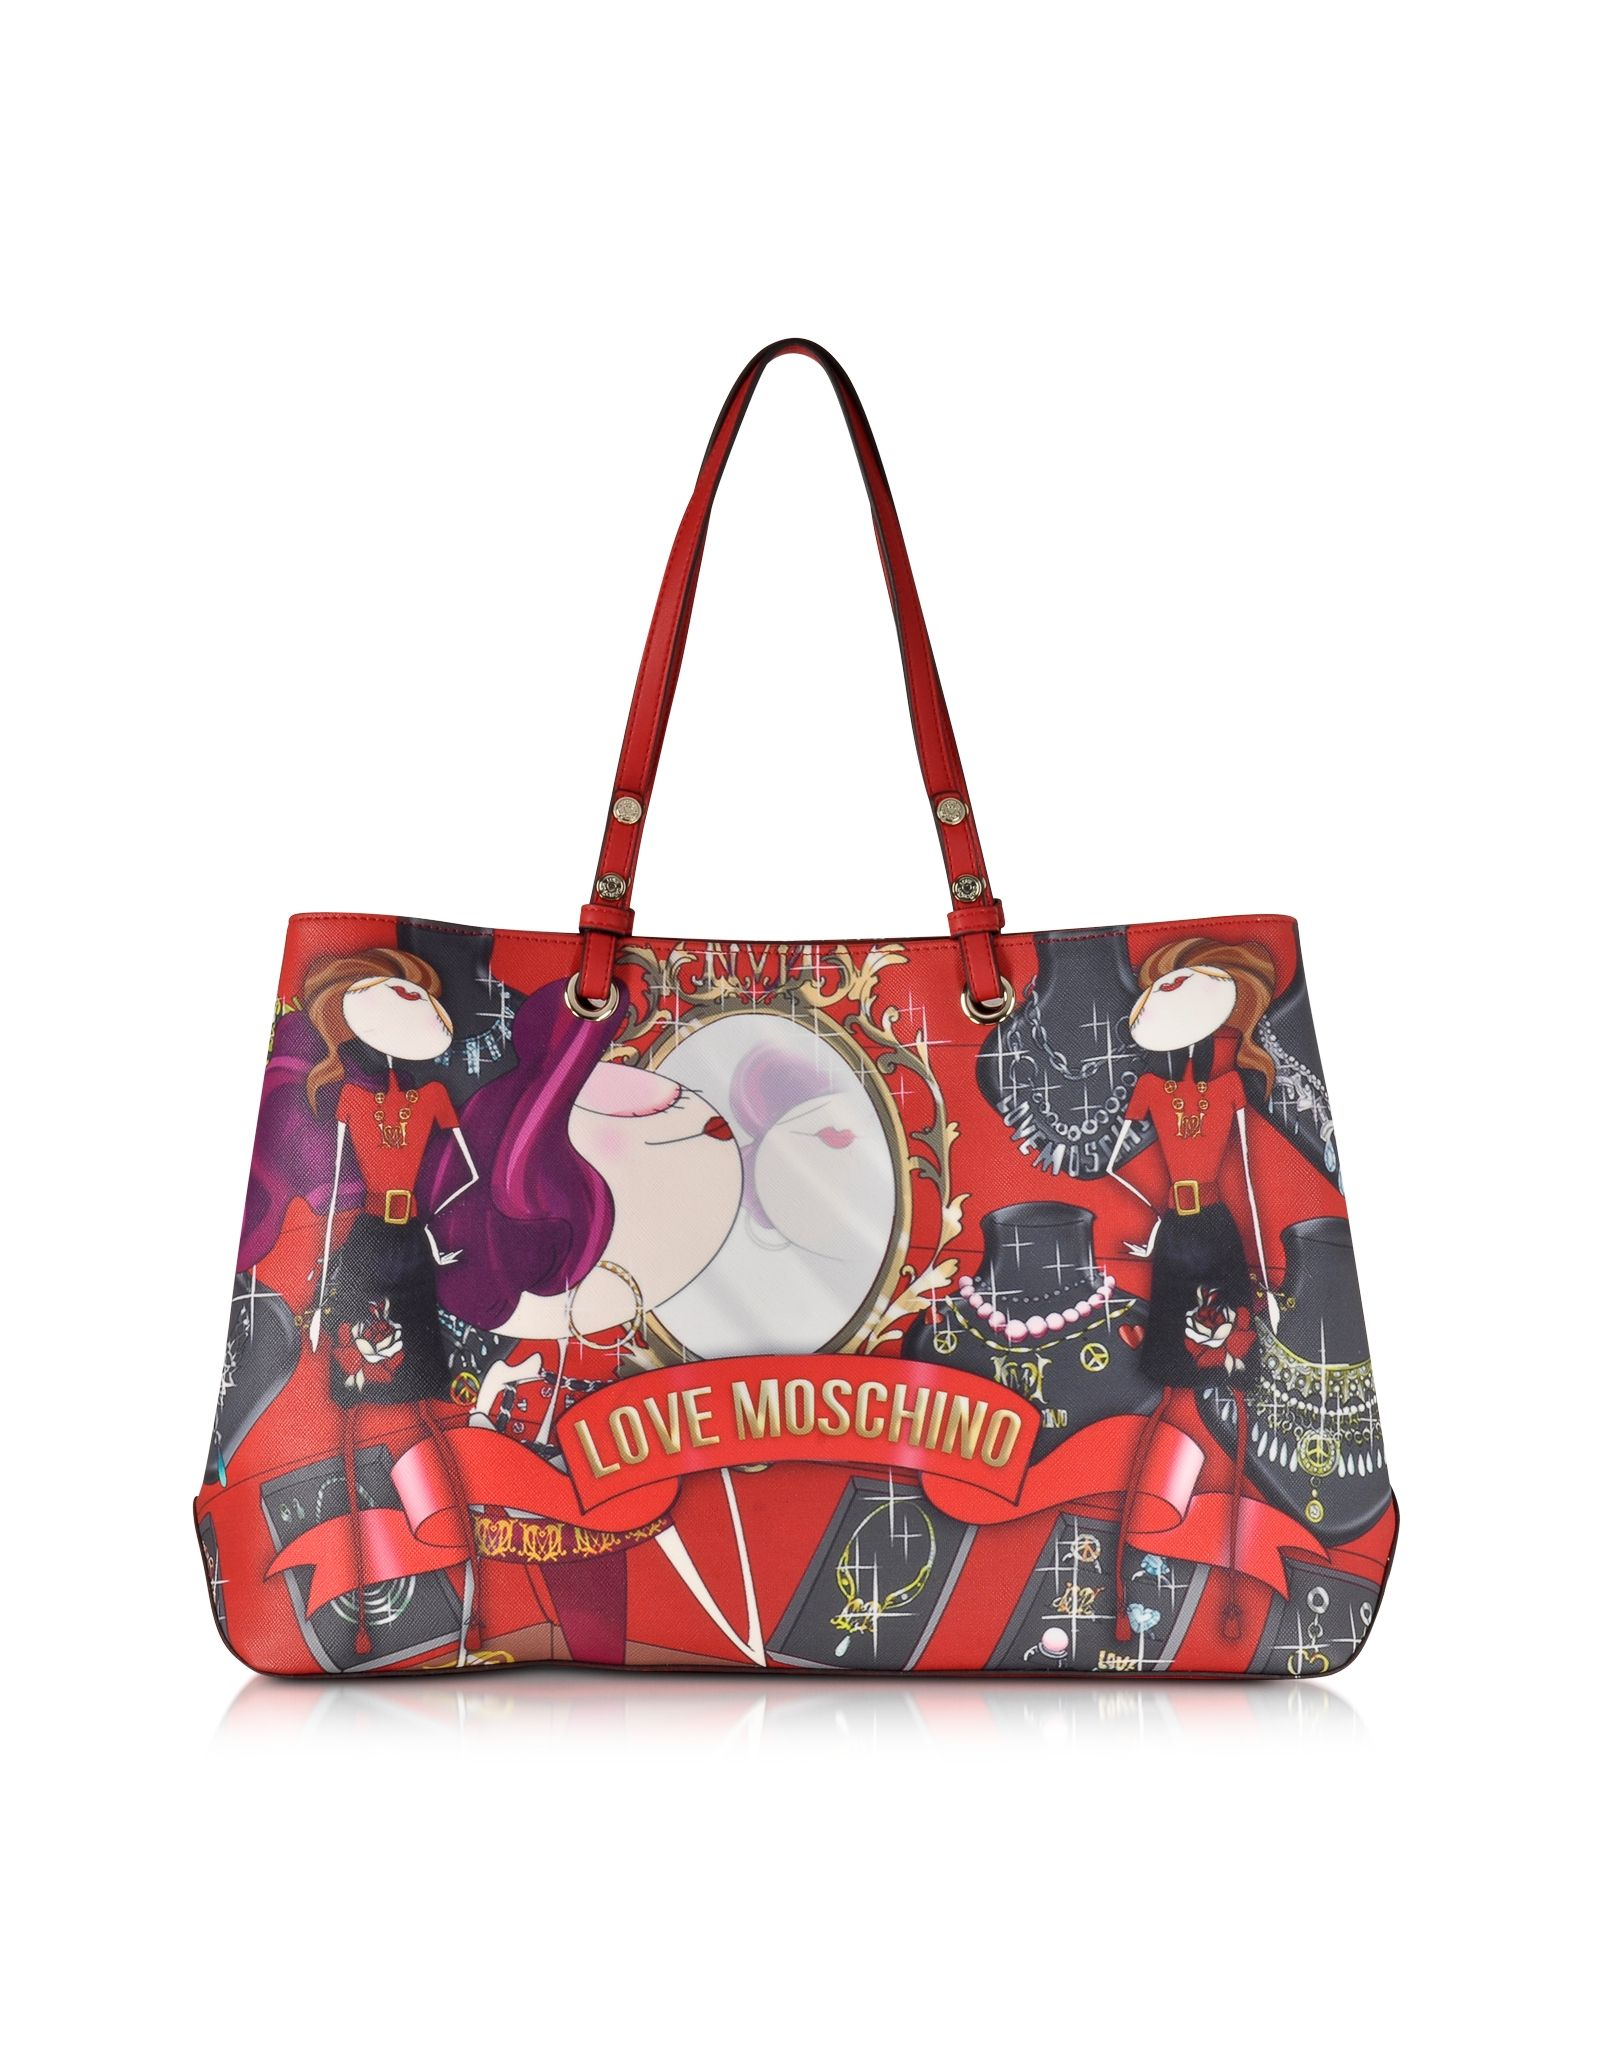 Saffiano Print Large Eco Red At Tote Moschino Love Leather Wgirl P8gxntw